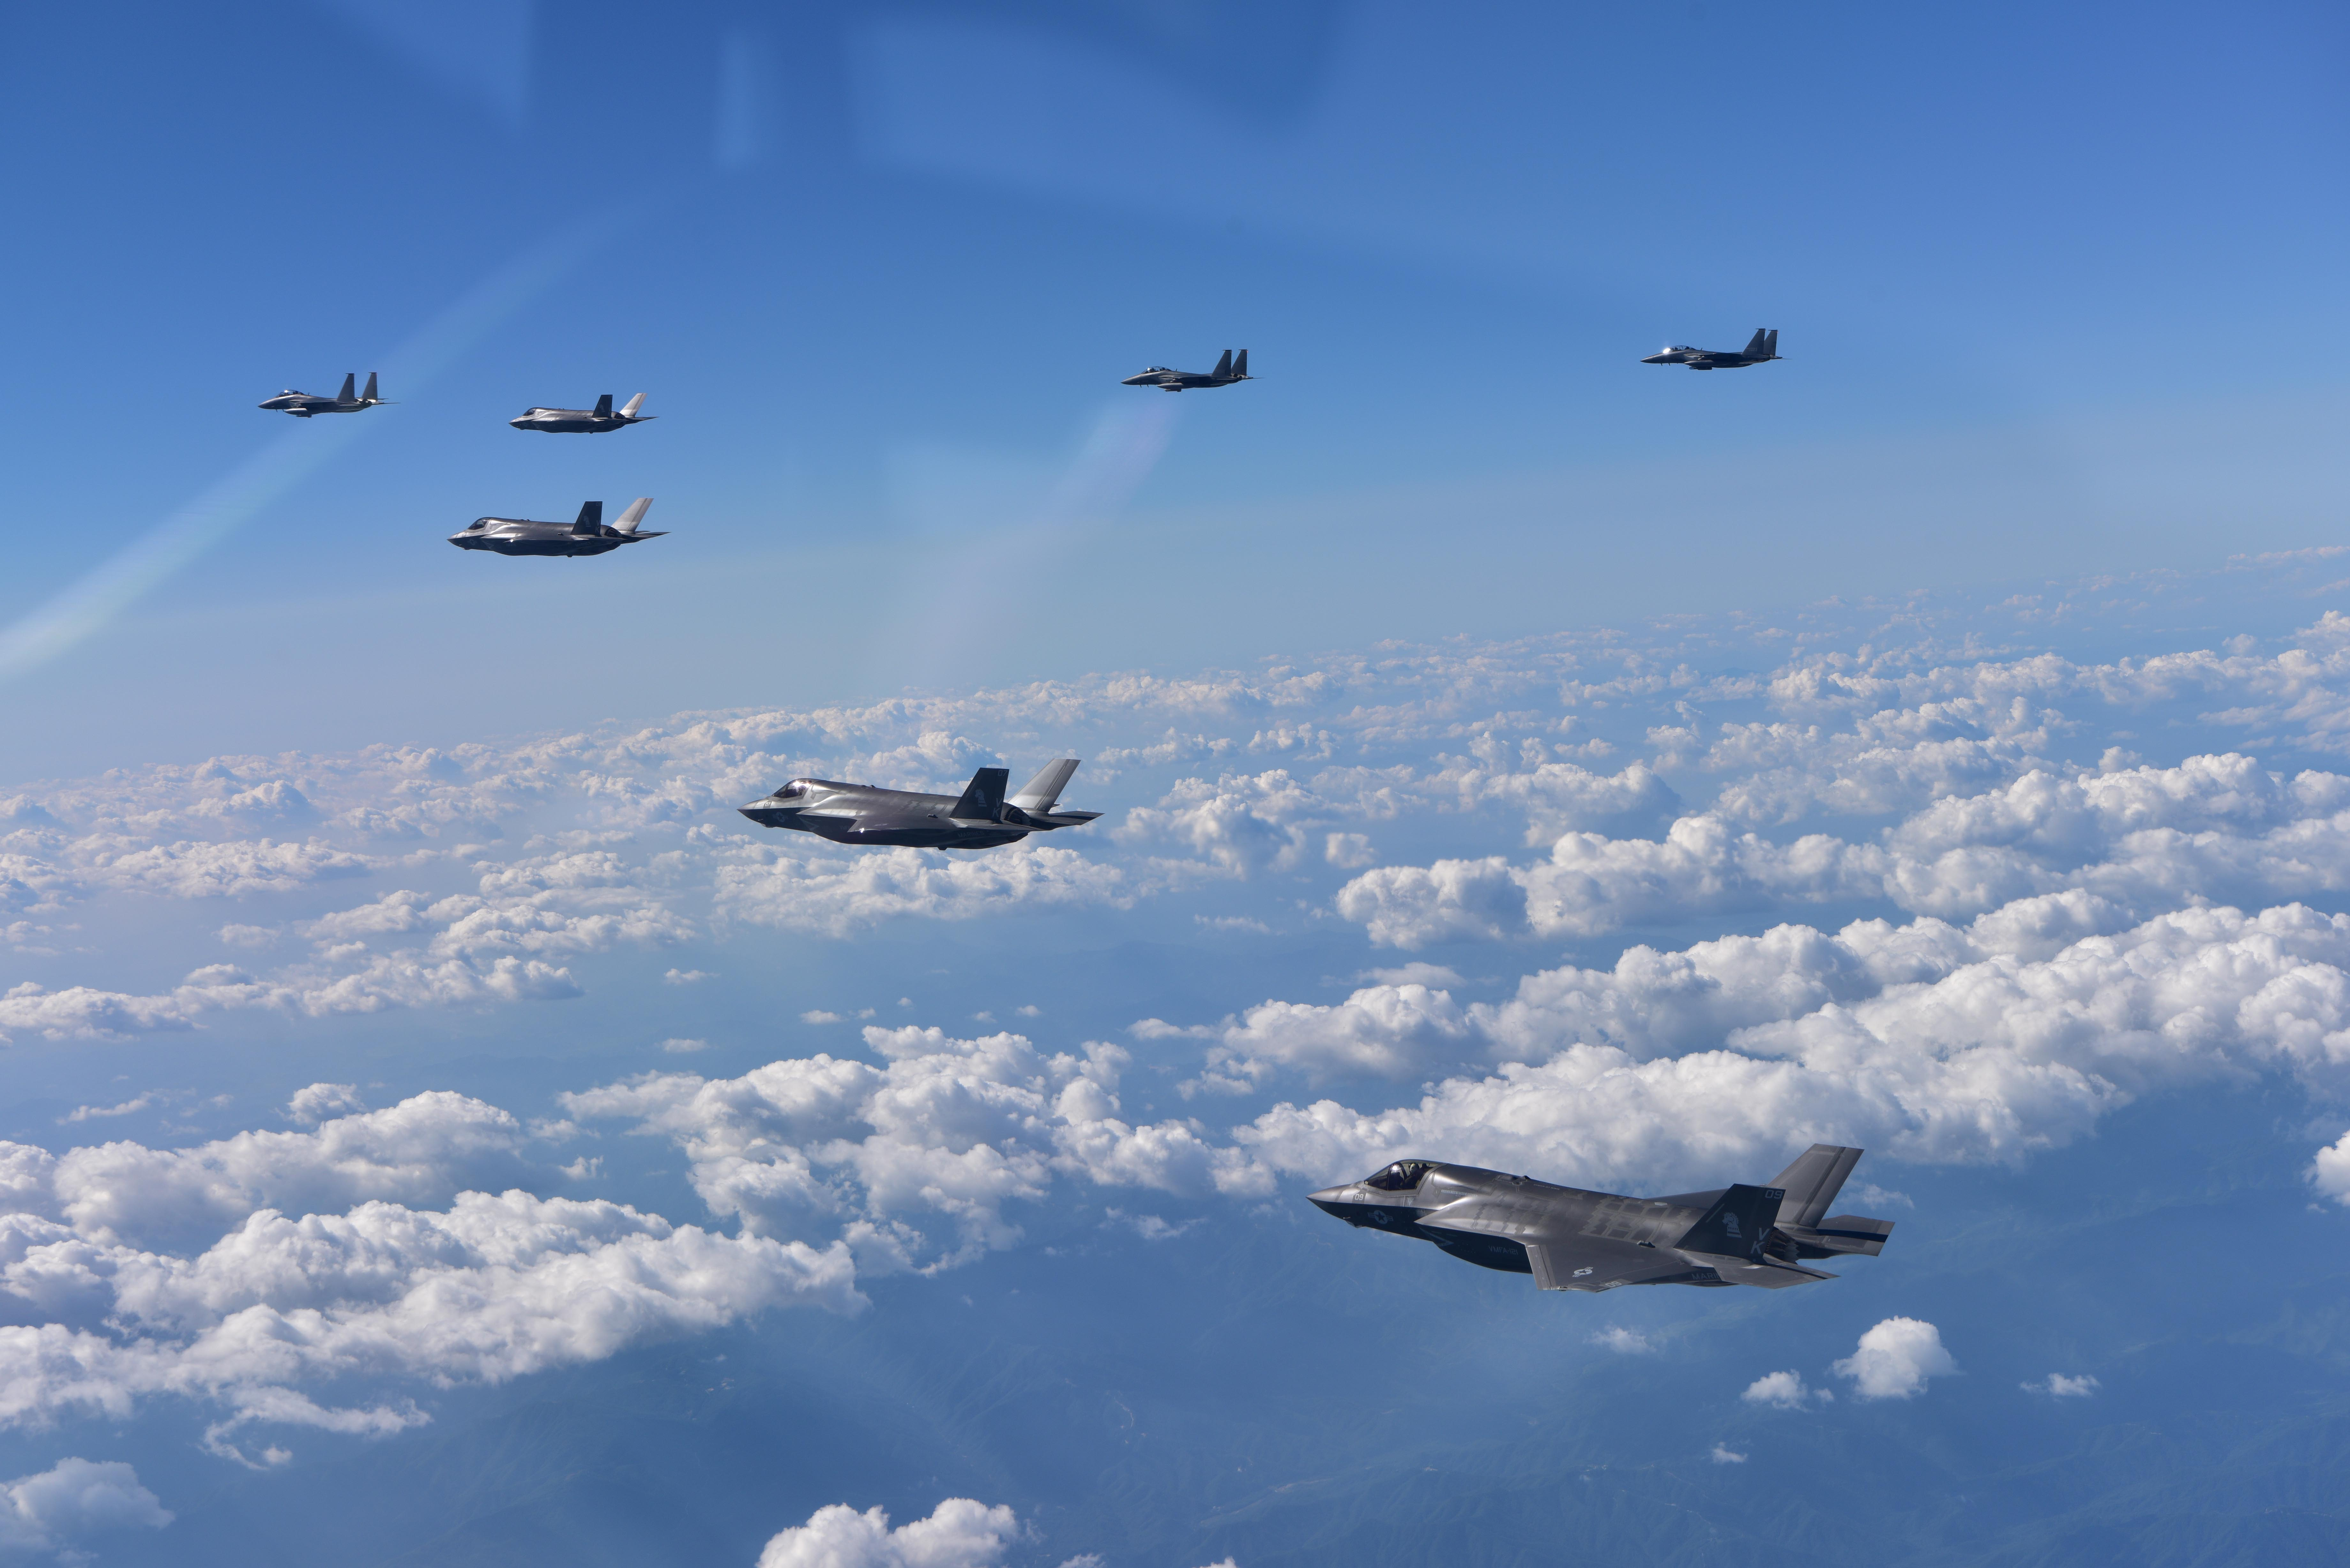 In a demonstration of U.S. commitment to its allies, U.S. Marine Corps F-35B Lightning II fighters assigned to Marine Corps Air Station Iwakuni, Japan, are joined by South Korean Air Force F-15K fighters during a 10-hour mission from Andersen Air Force Base, into Japanese airspace and over the Korean Peninsula on Aug. 30, 2017. (South Korea Defense Ministry via AP)